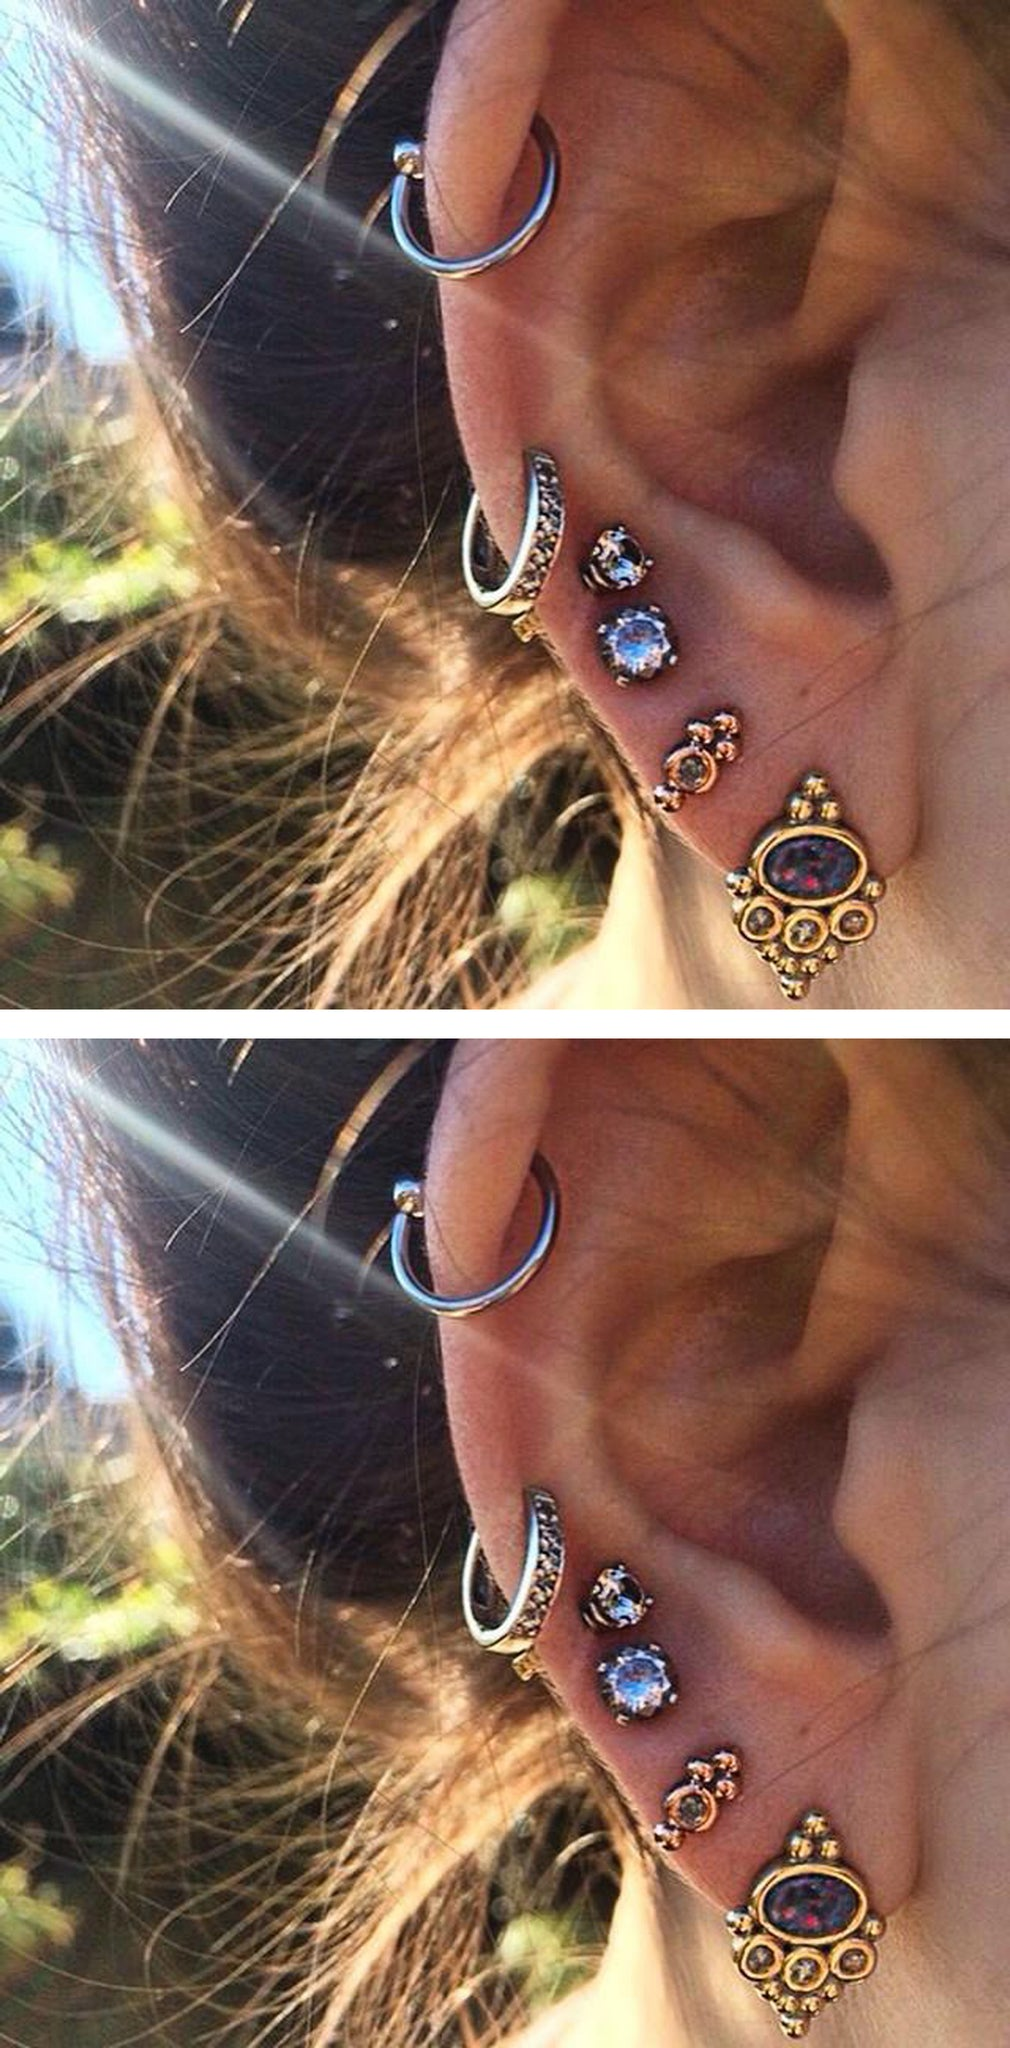 Badass Multiple Ear Piercing Ideas for Cartilage, Top Ear - Cute & Popular ideas para perforar orejas - www.MyBodiArt.com